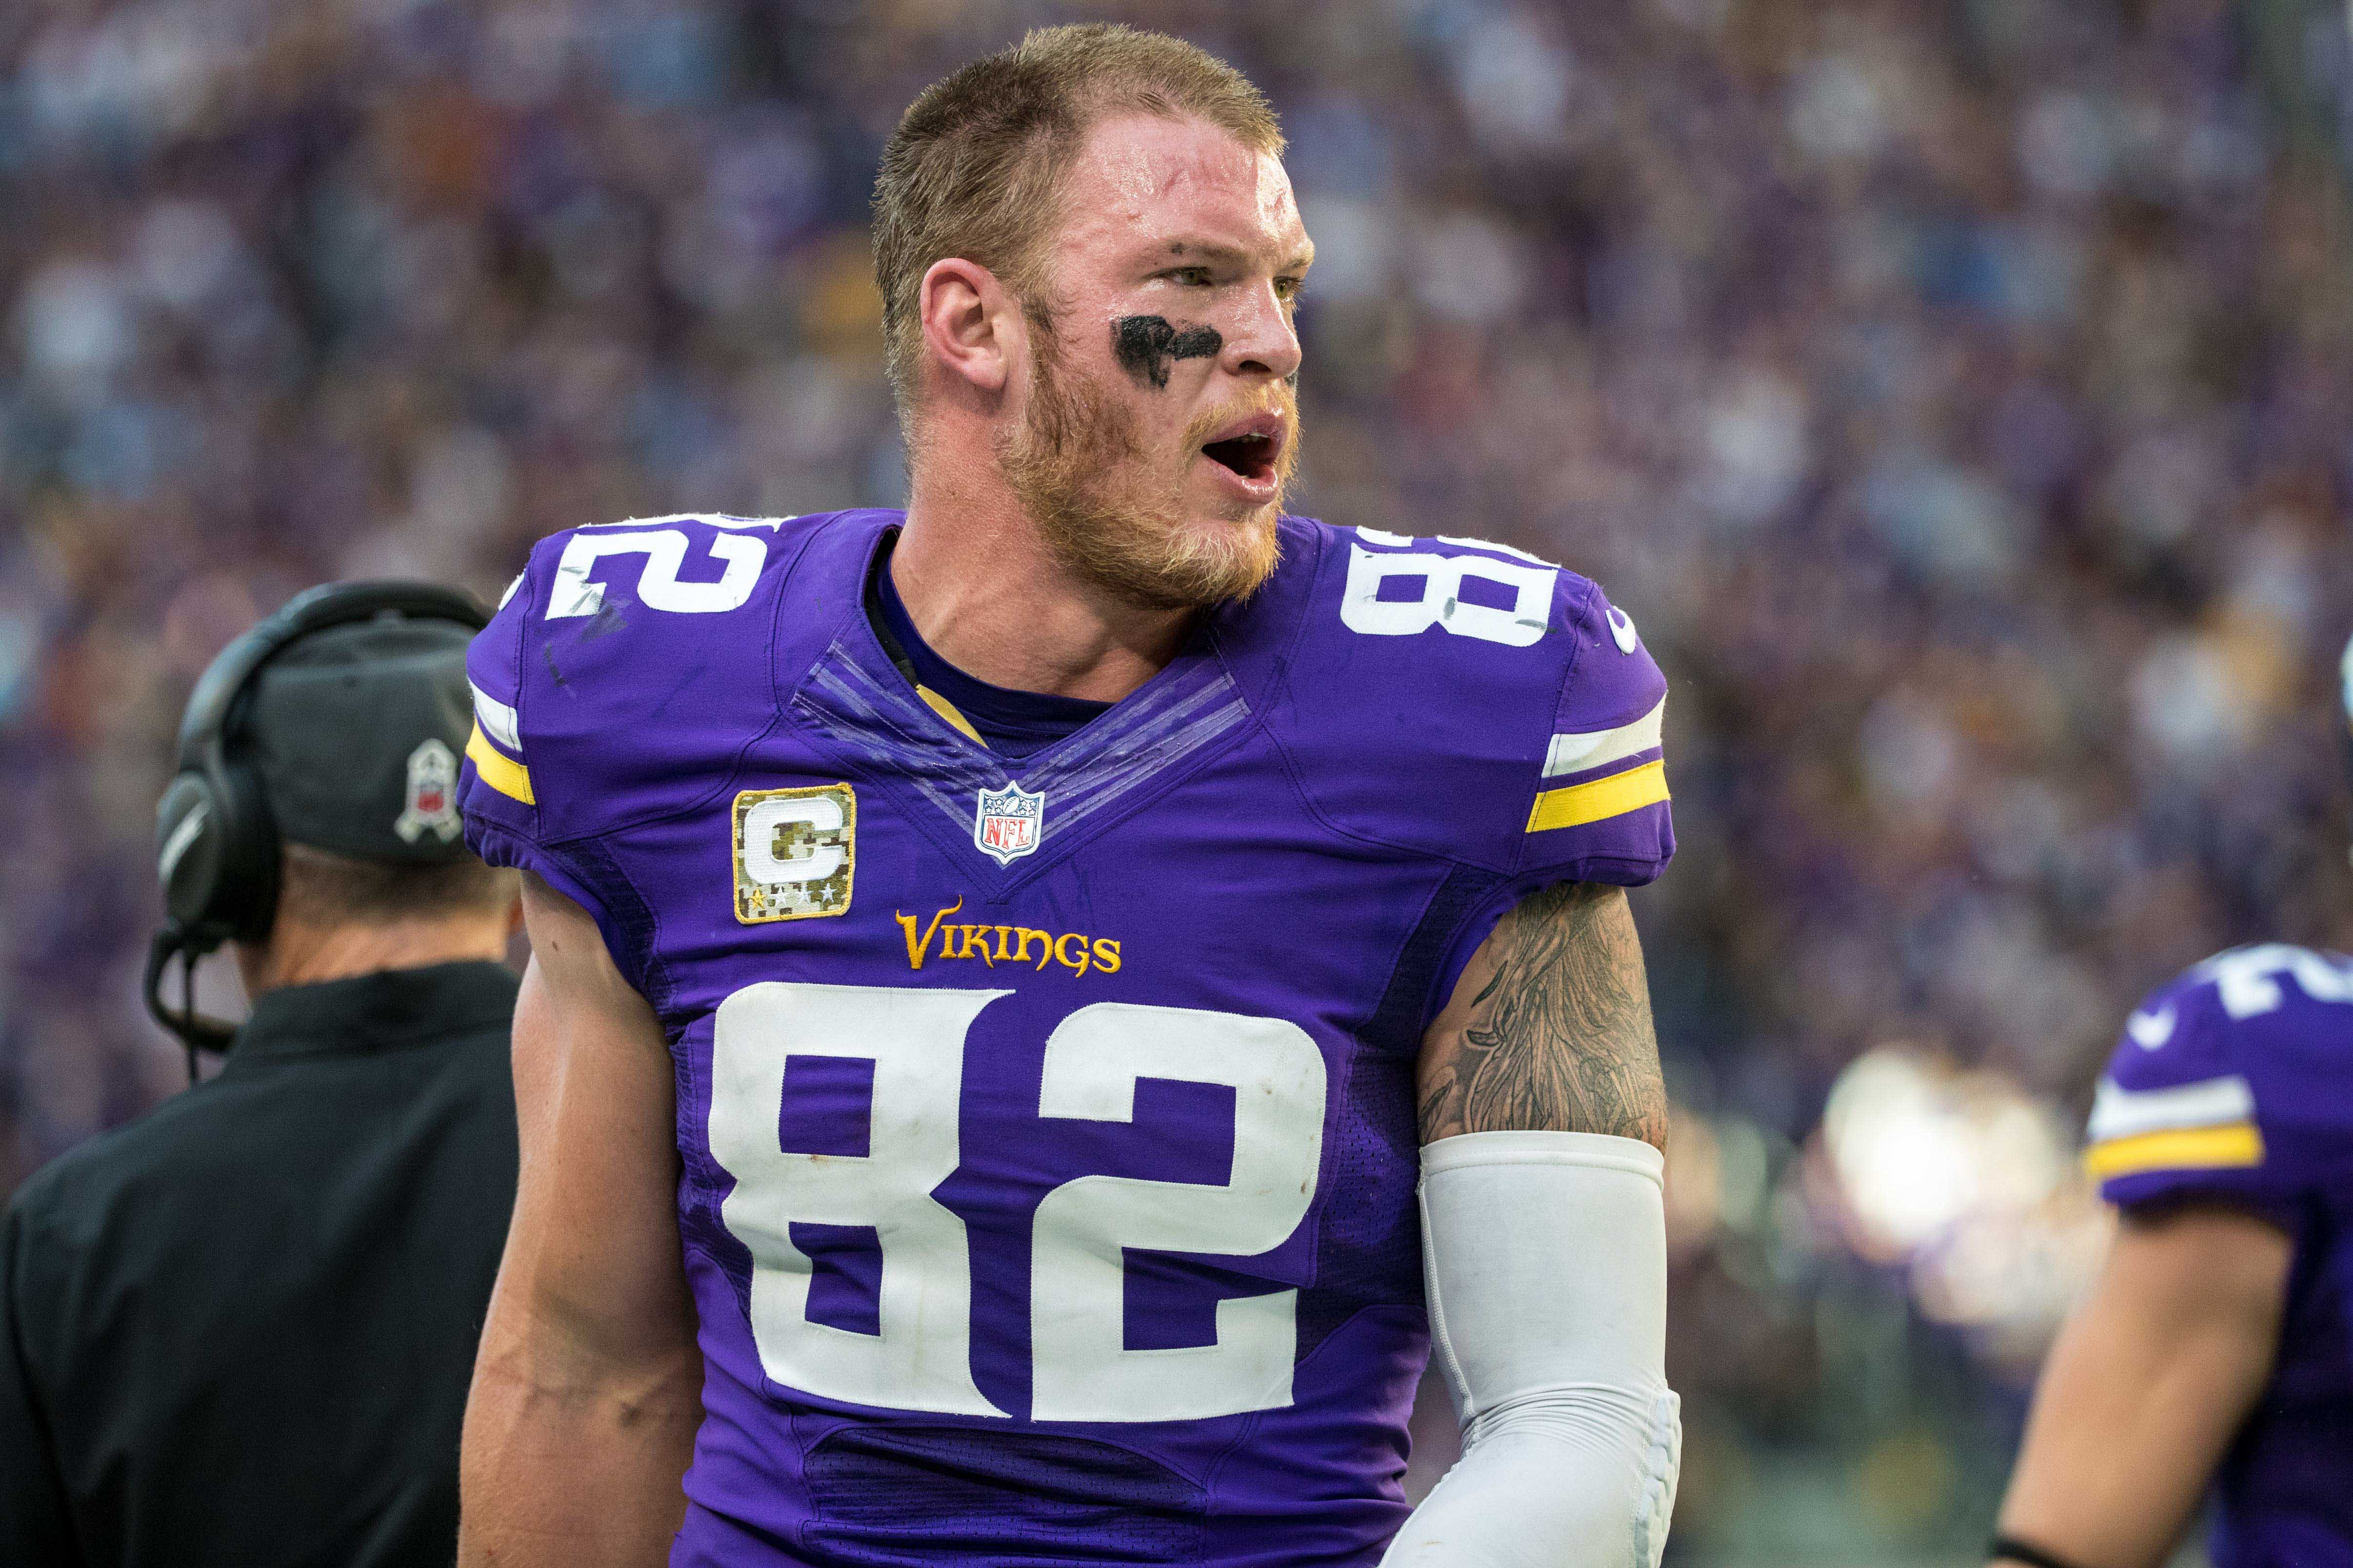 c772772d Who will be the Vikings' most productive player on offense in 2017?